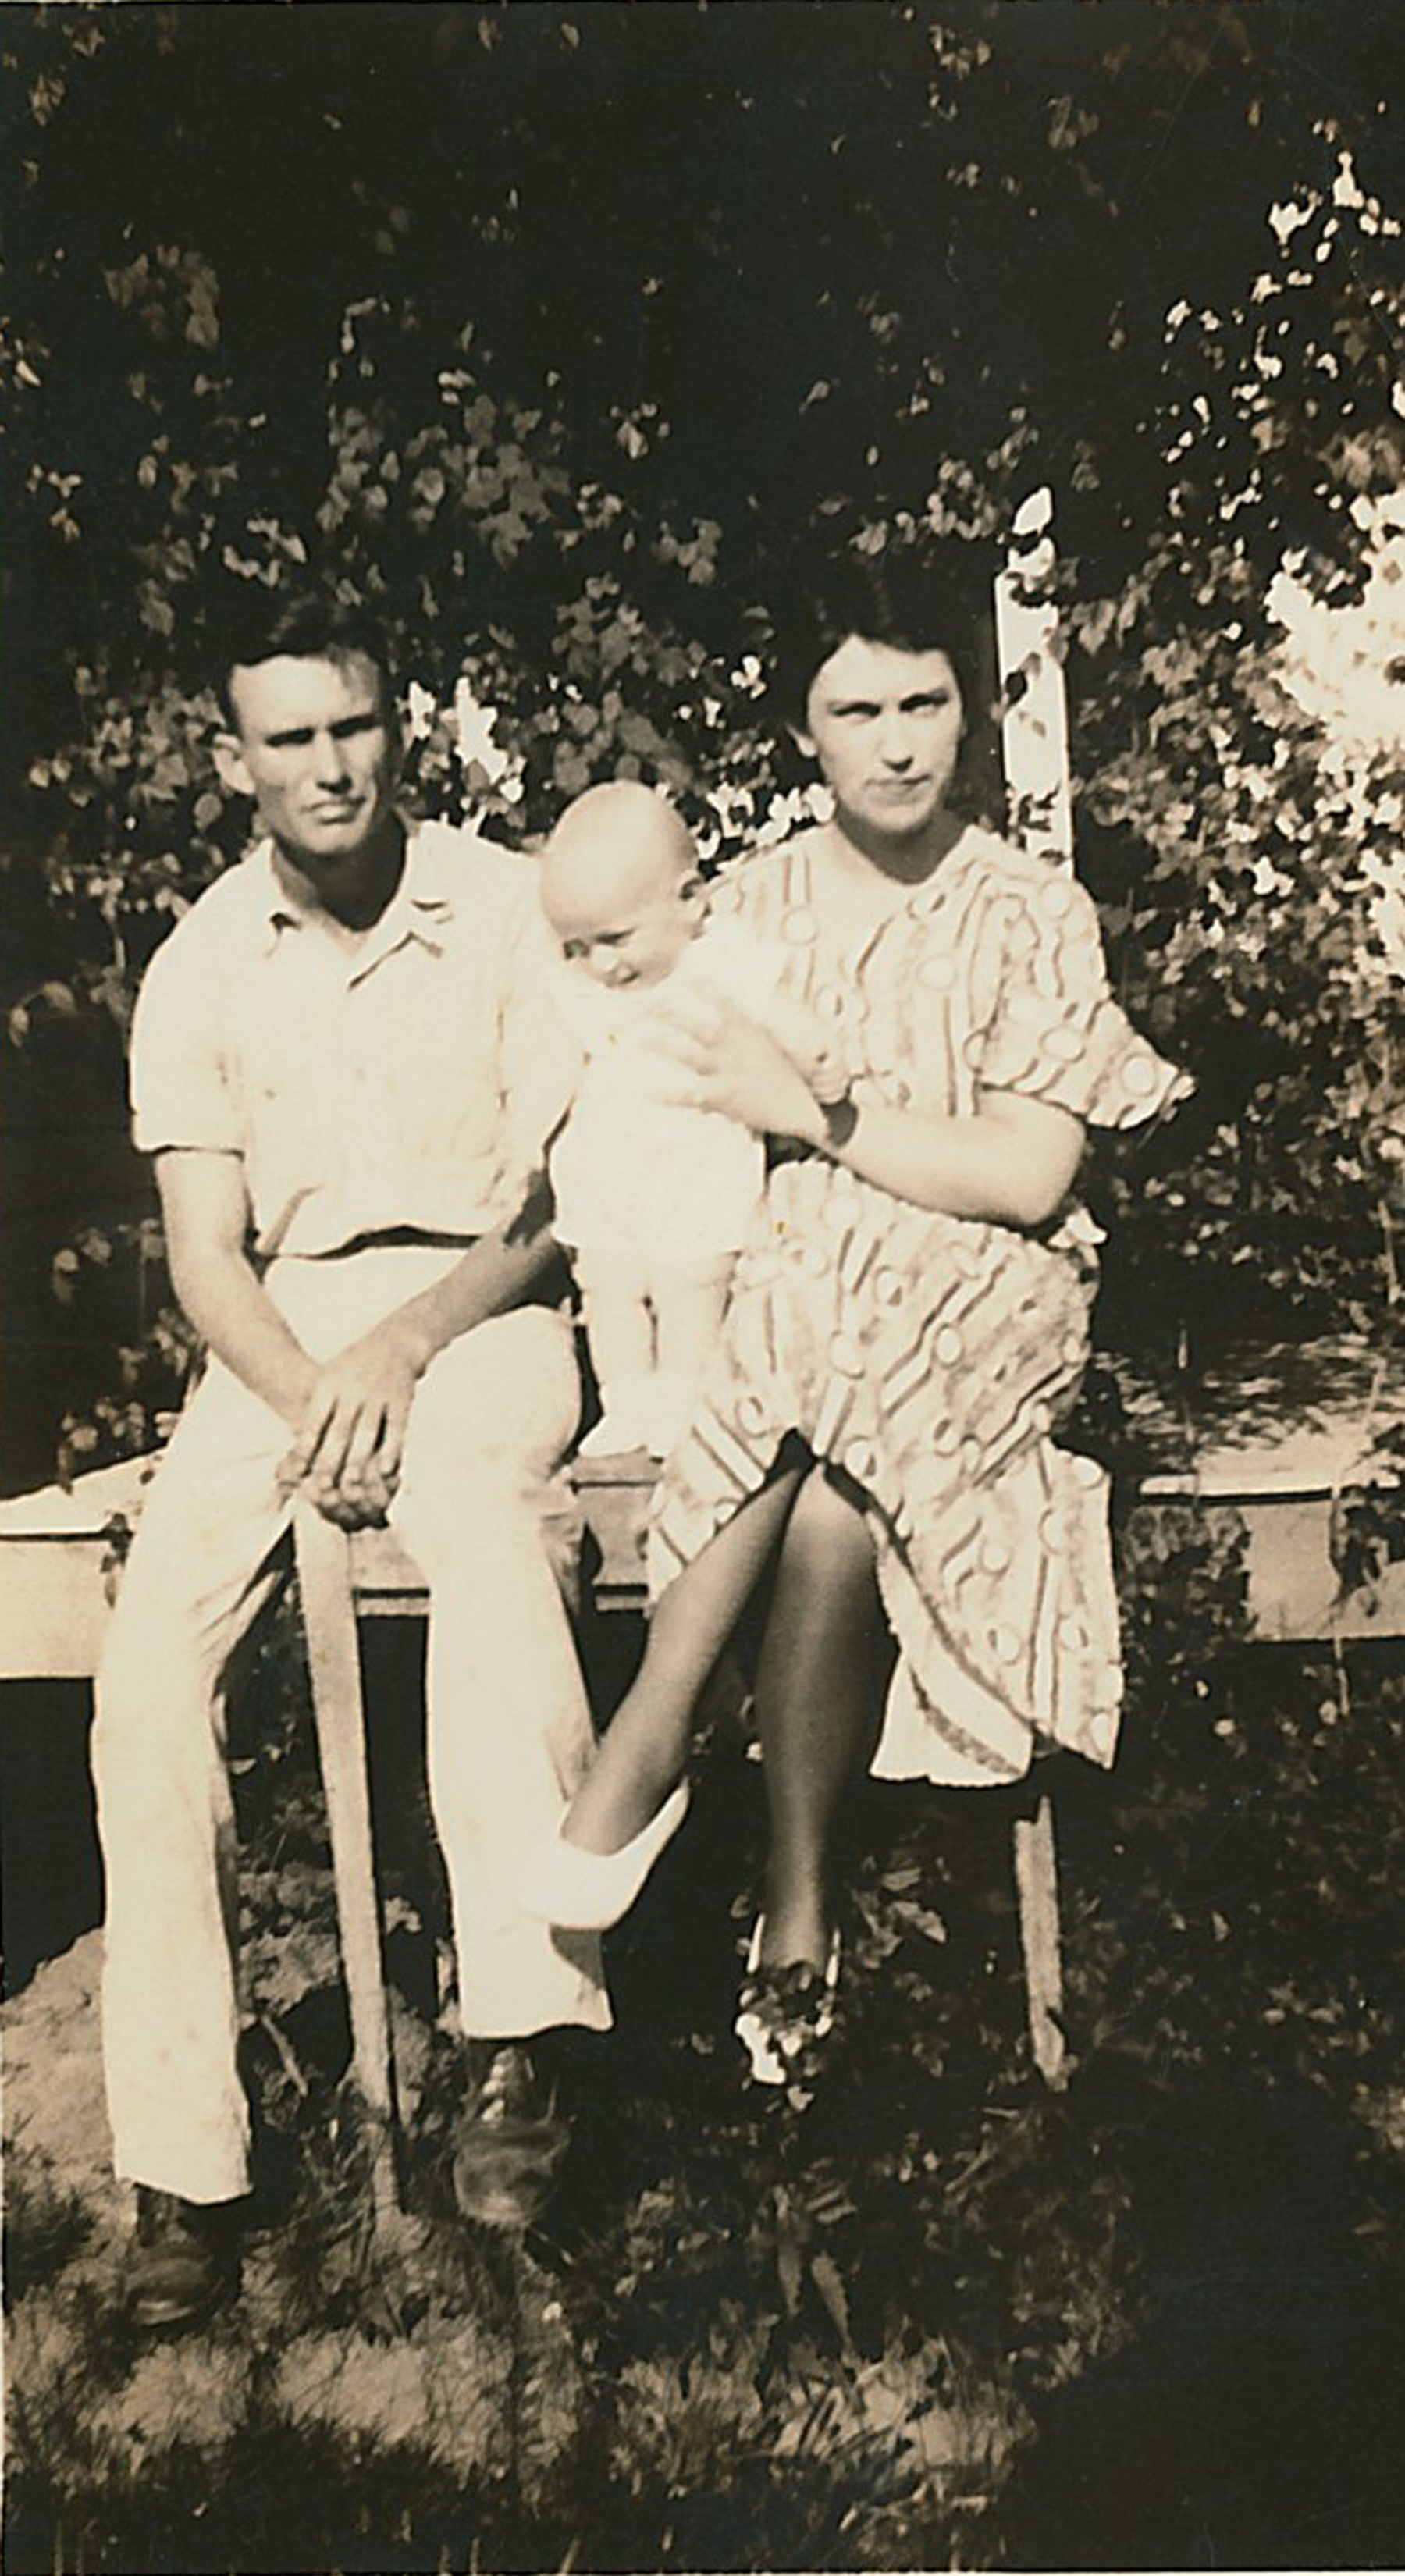 Jonathan's grandfather, Gerald Dayton Harden, with his great-grandparents Dayton and Elzie Harden. Elzie would later divorce Dayton and change Gerald's name to Hardin.